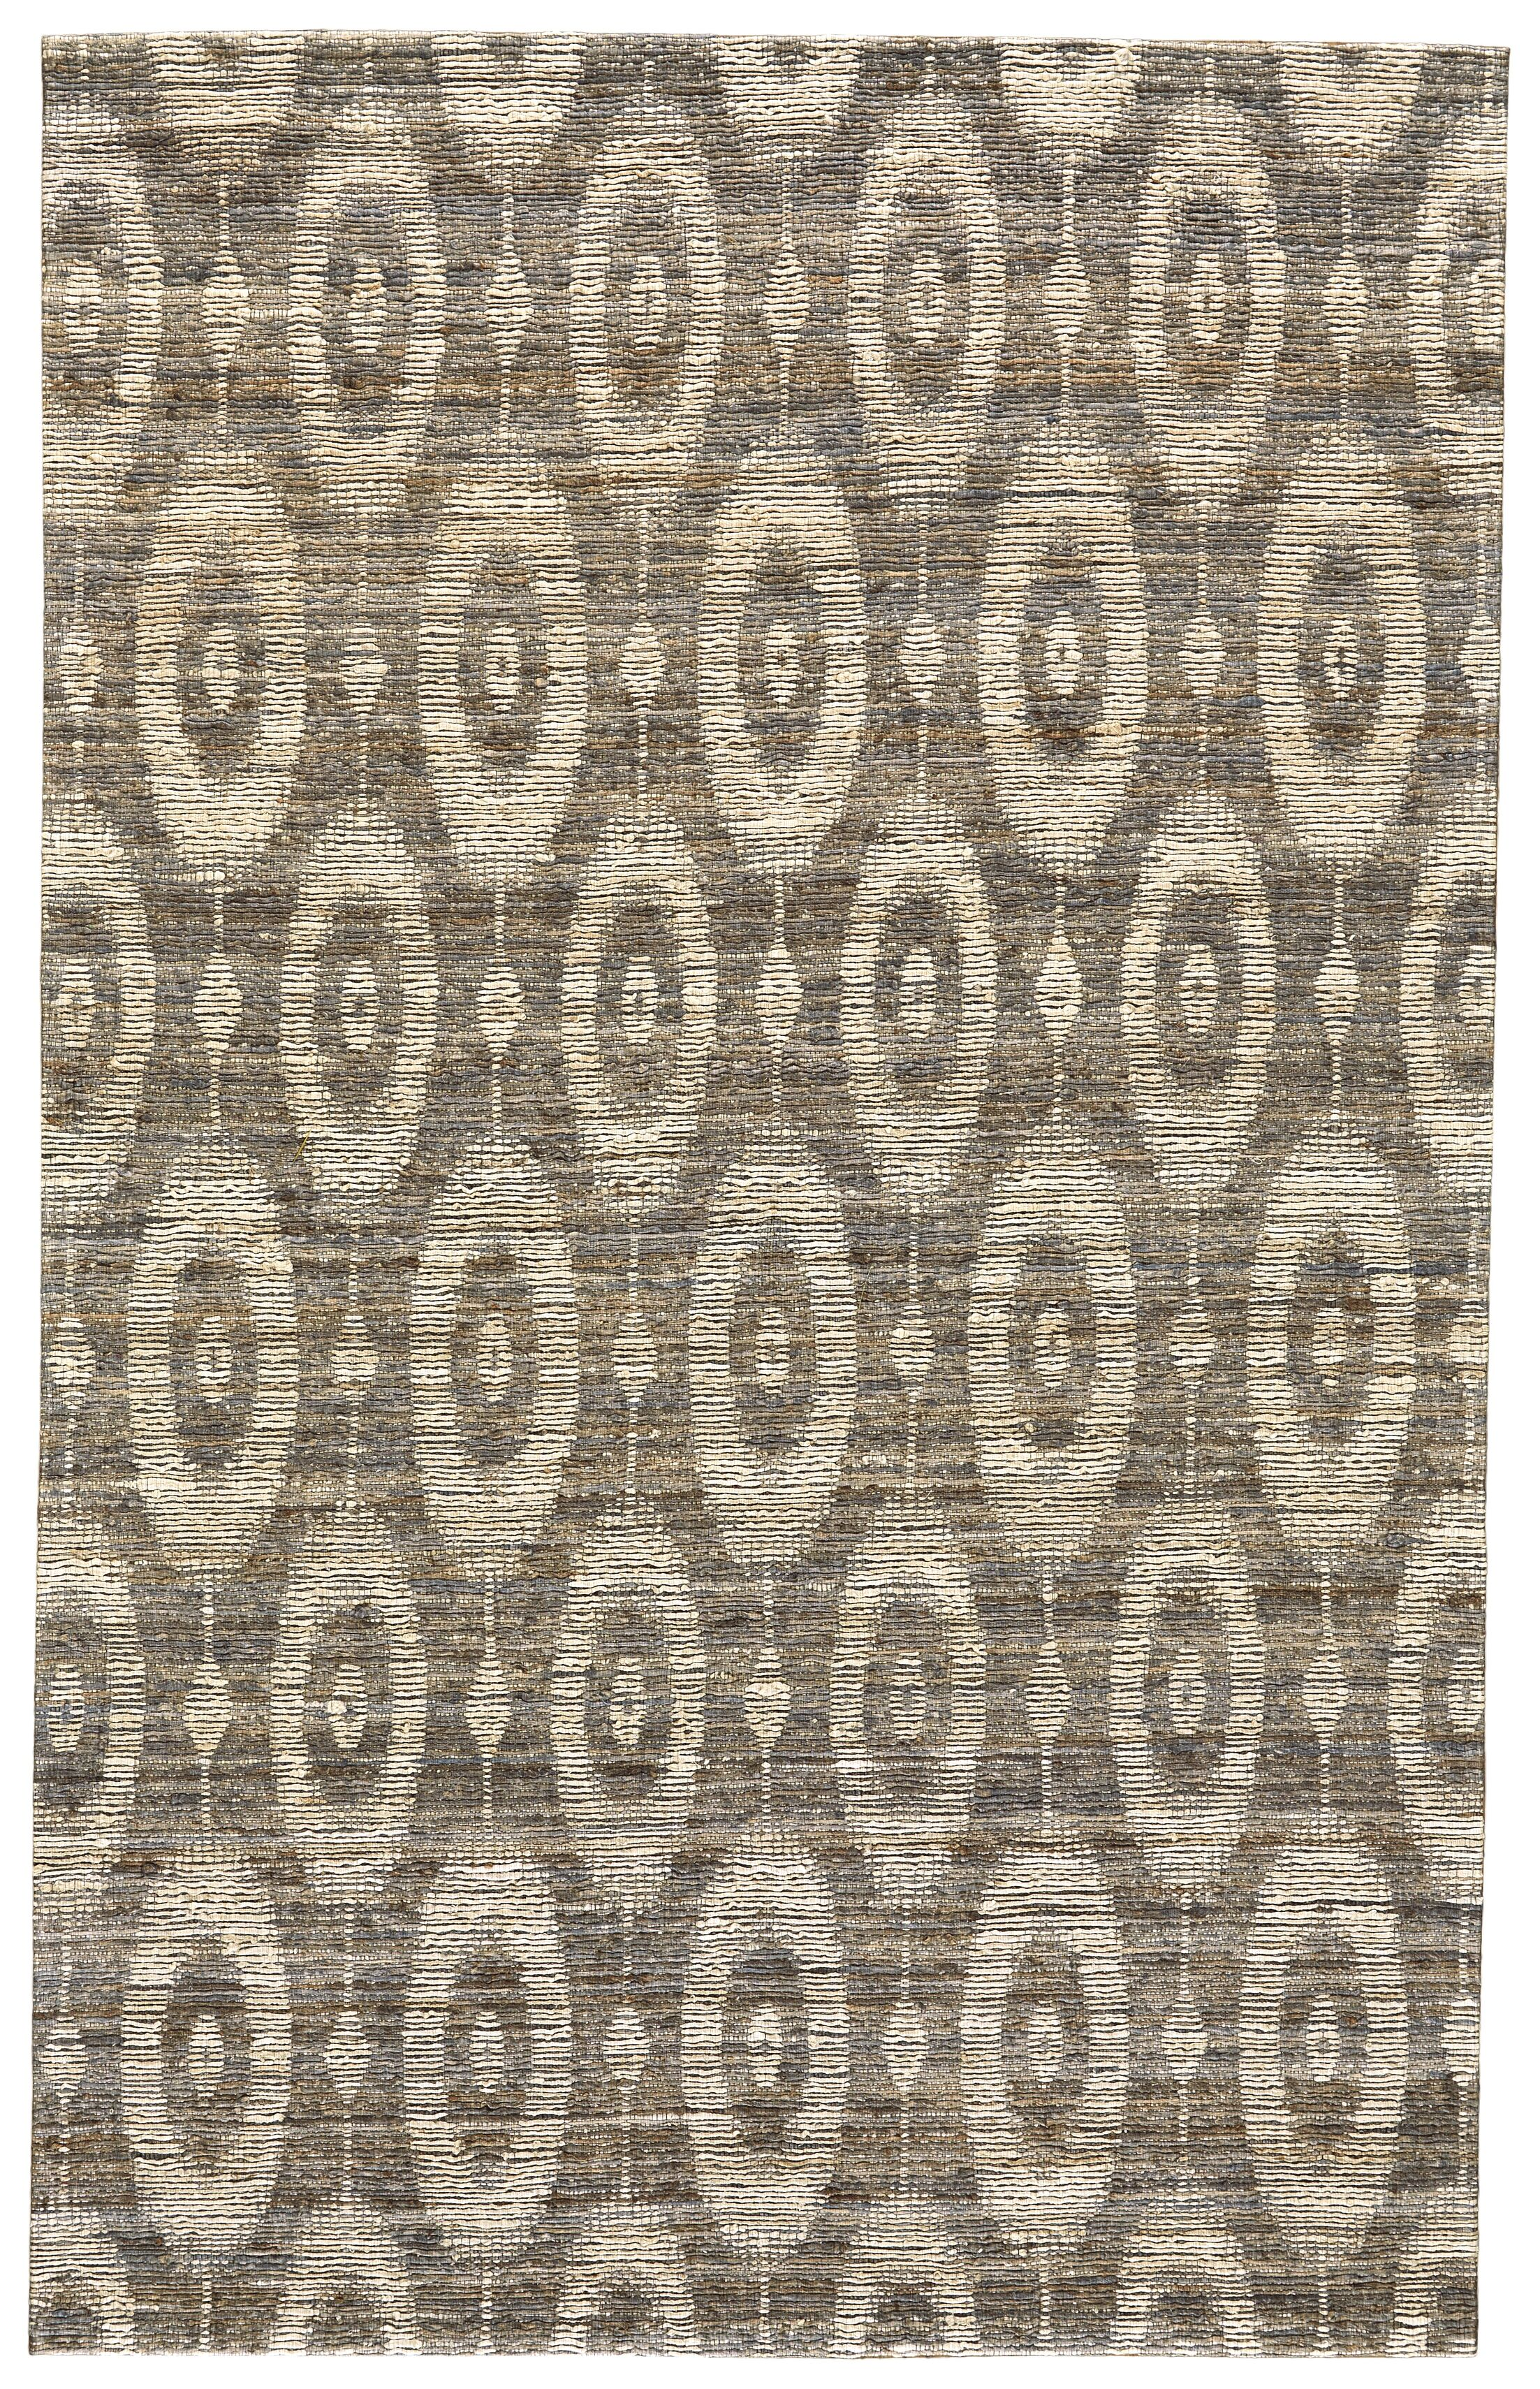 Reich Hand-Woven Gray Area Rug Rug Size: Rectangle 8' x 11'